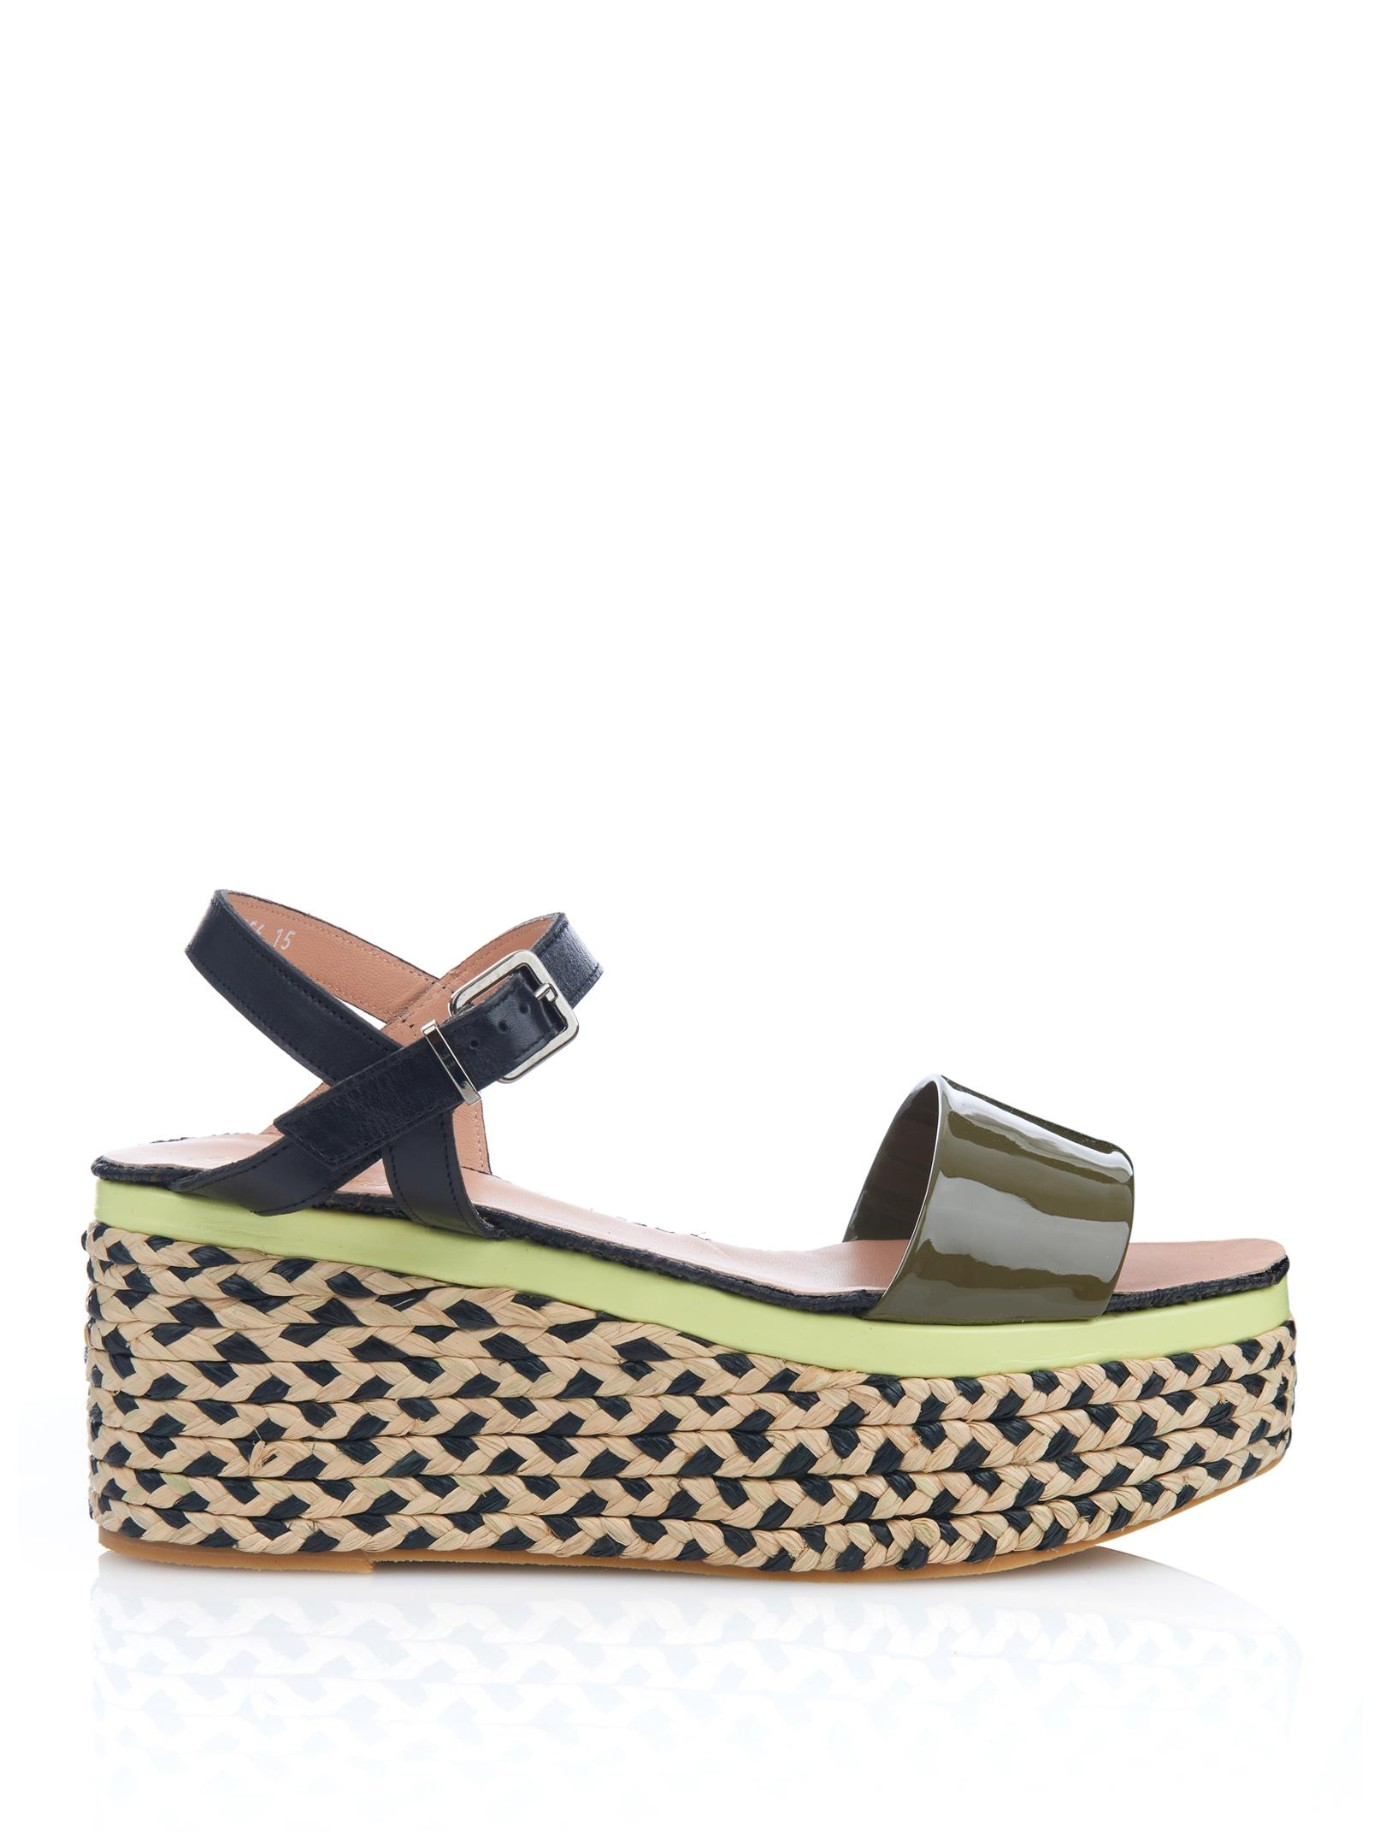 Robert Clergerie Adios Raffia And Leather Platform Sandals